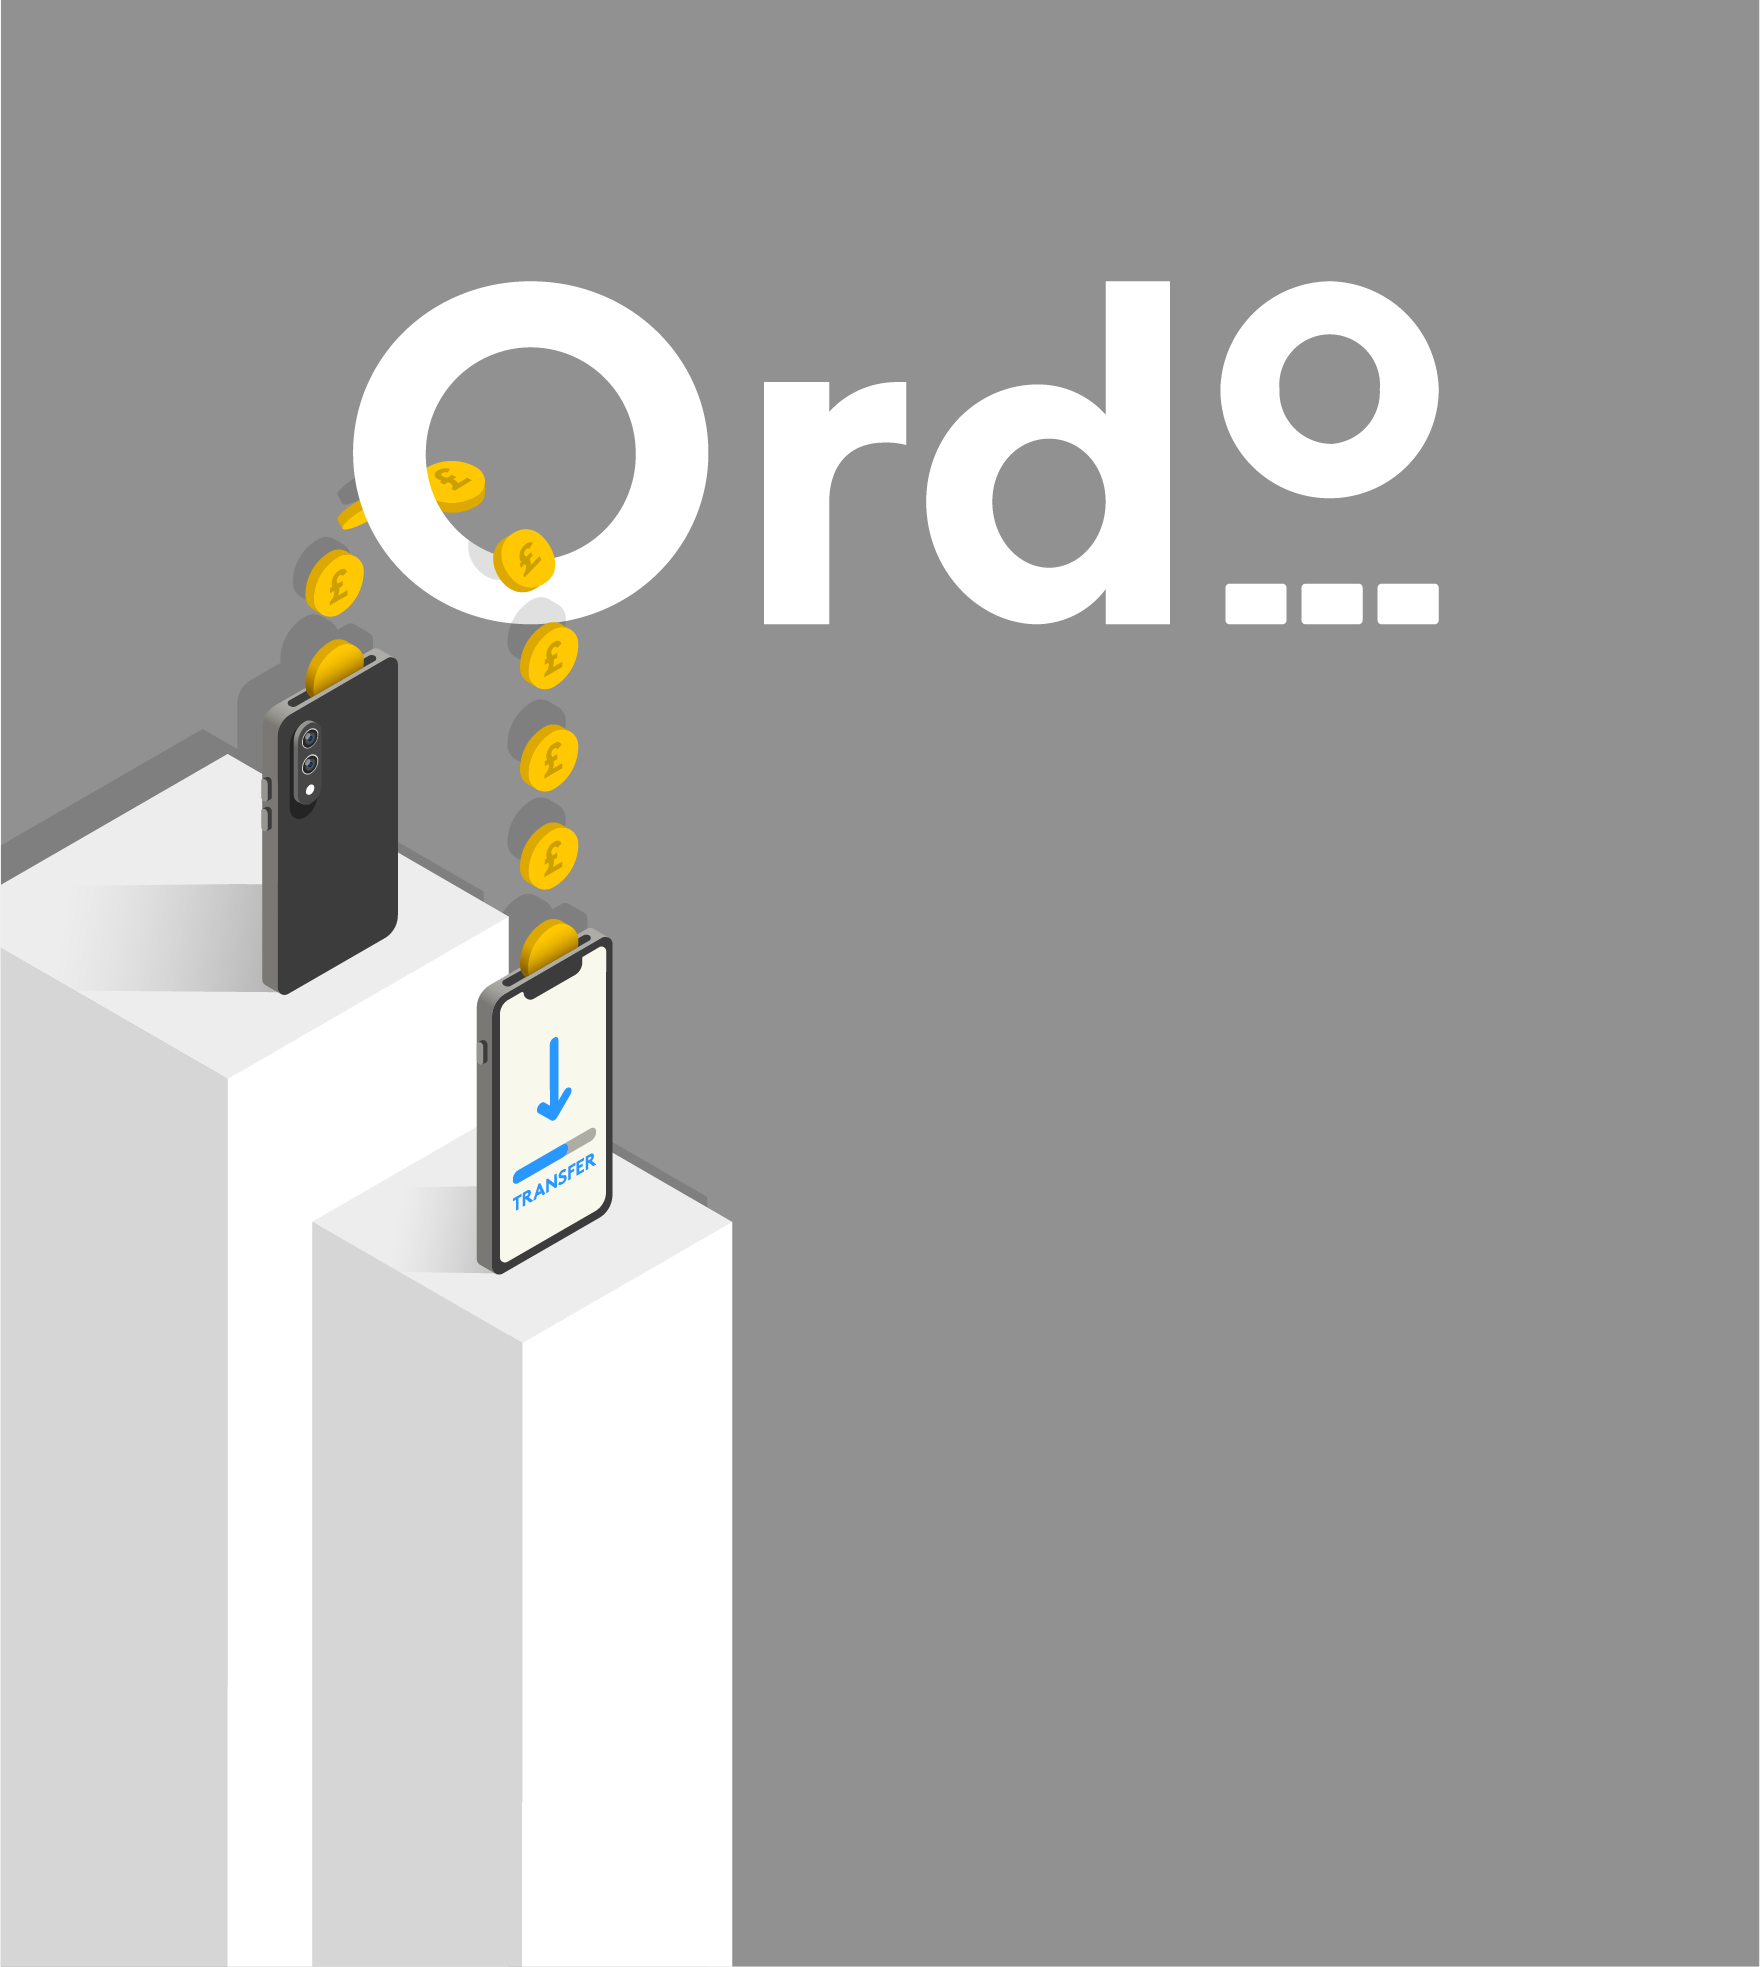 Ordo shook up payments